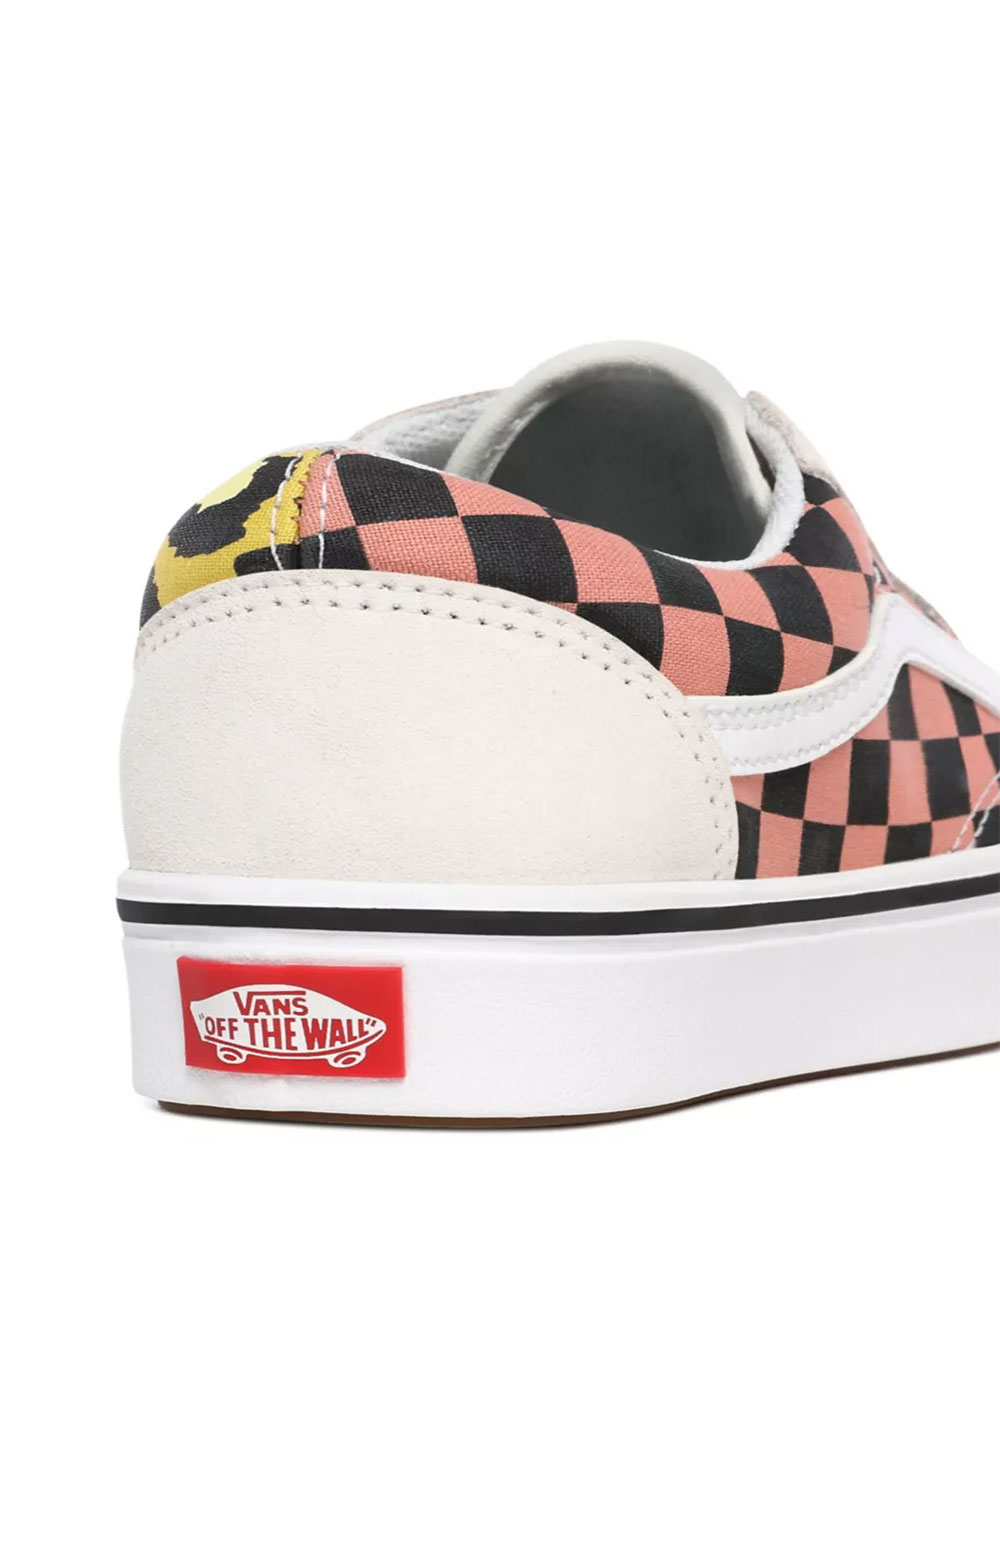 (WMA1PC) Mixed Media ComfyCush Old Skool Shoes - White/Multi 5